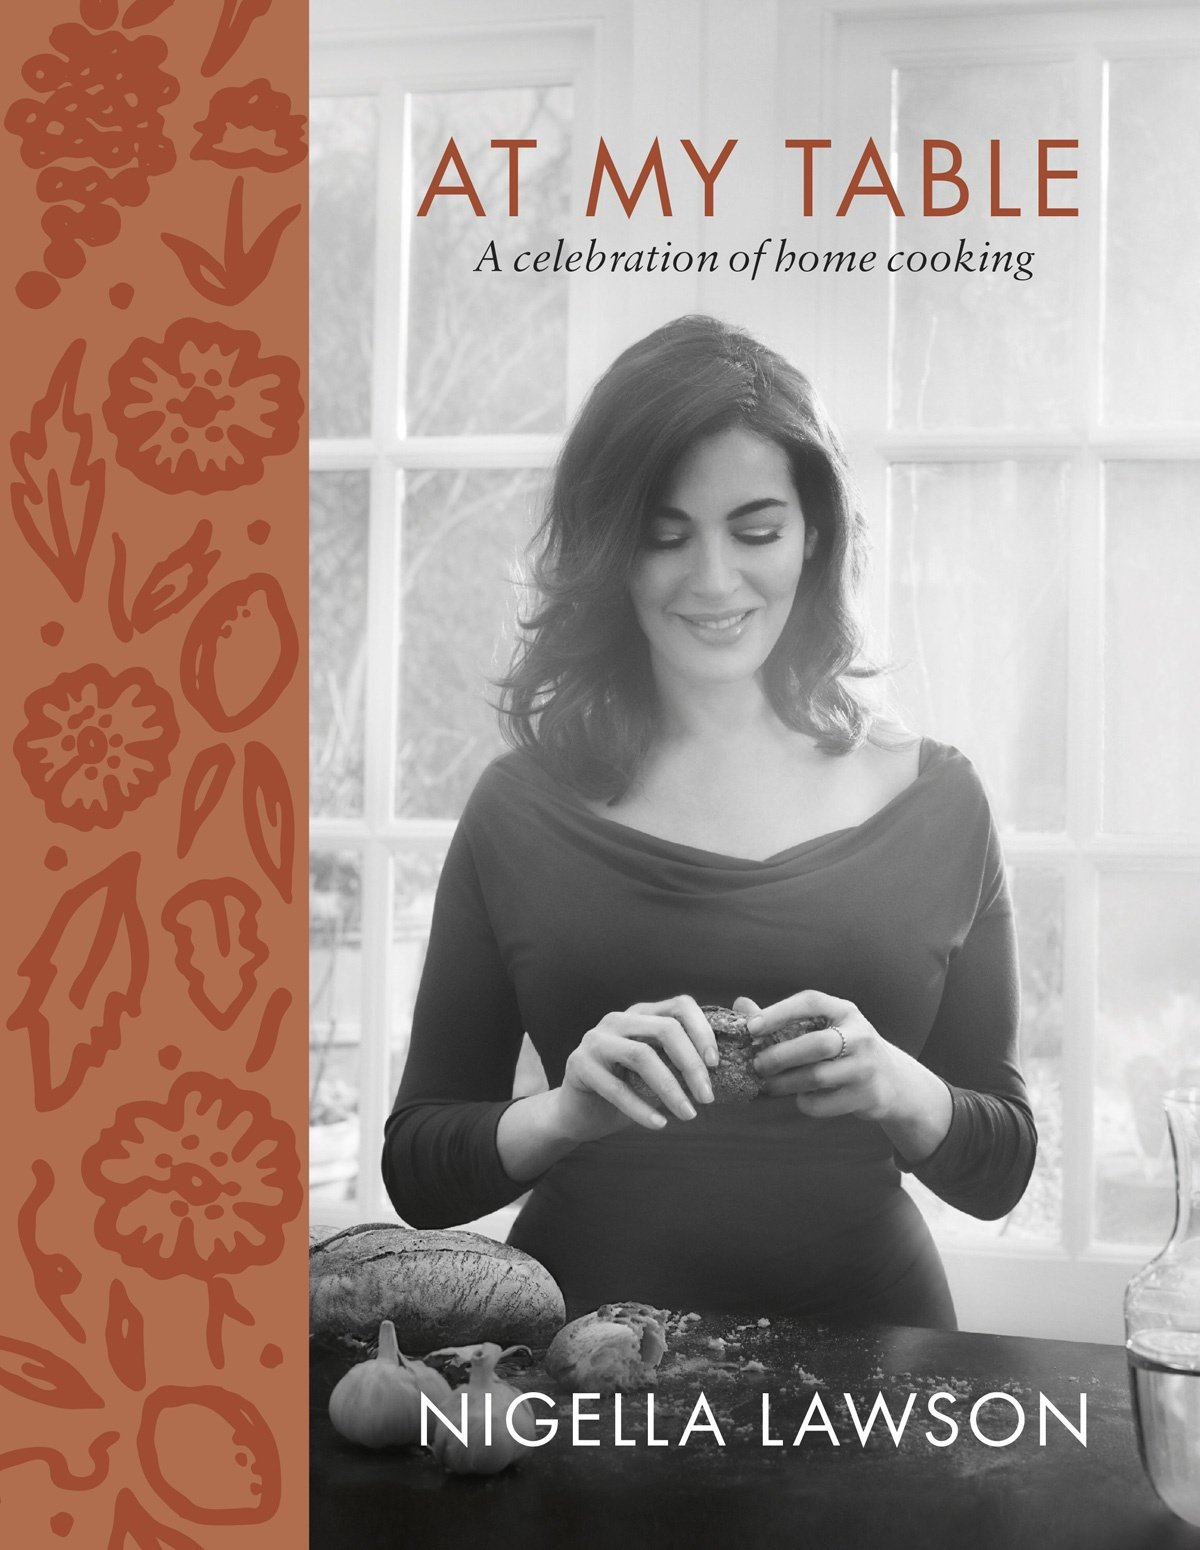 Book cover of At My Table by Nigella Lawson